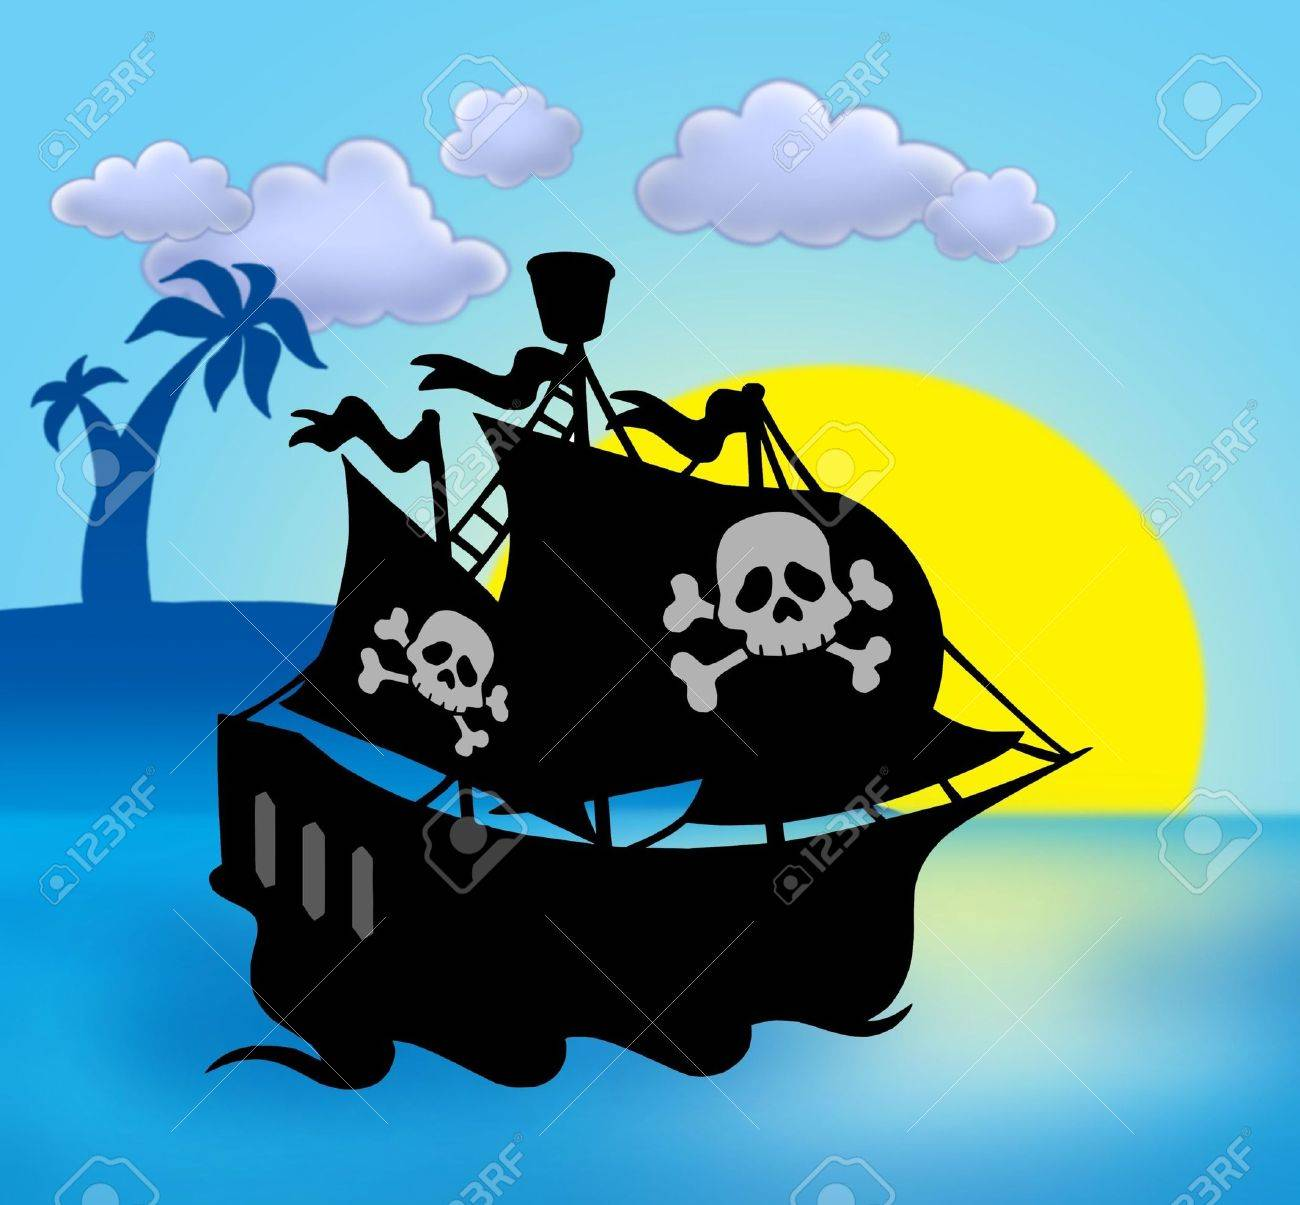 Sunset with pirate ship silhouette - color illustration. Stock Photo - 5766602